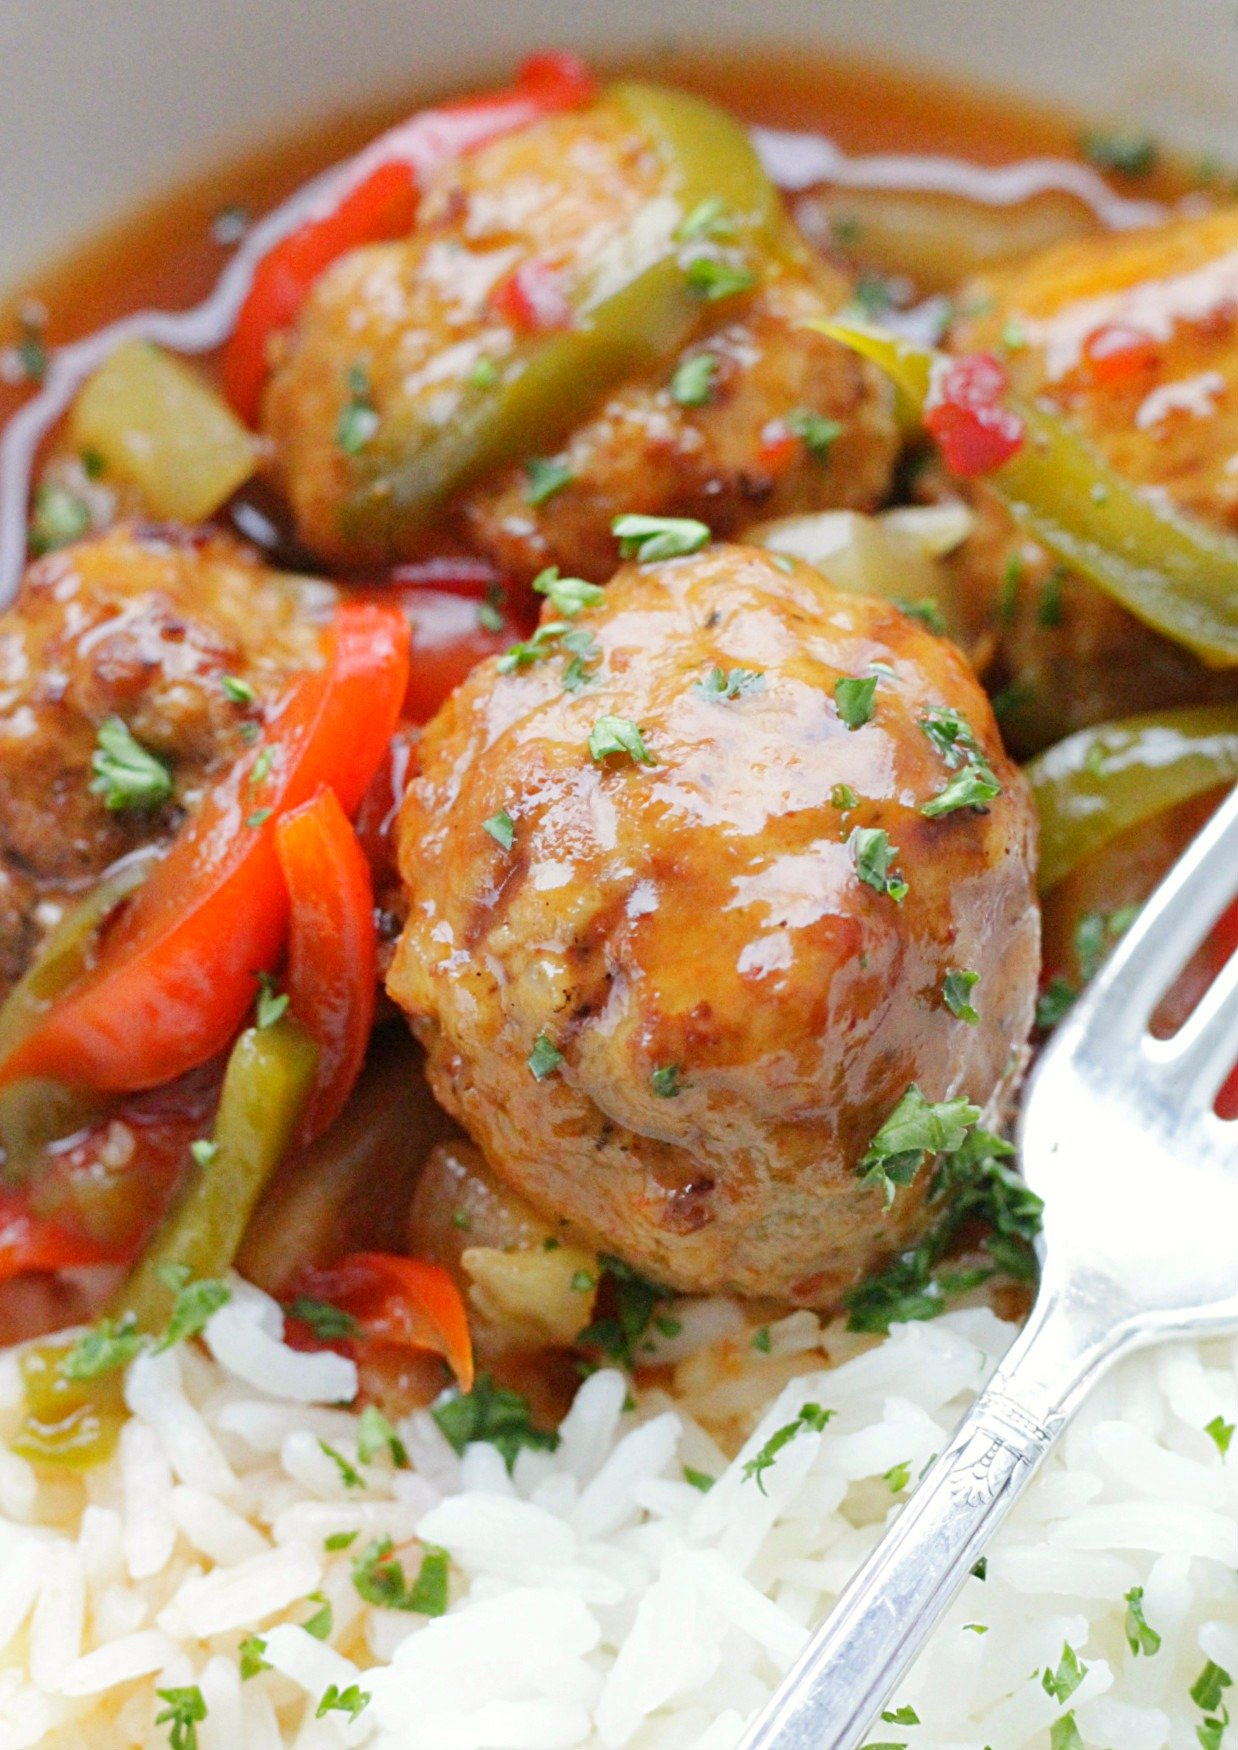 close up view of slow cooker sweet and sour meatballs in a bowl with white rice